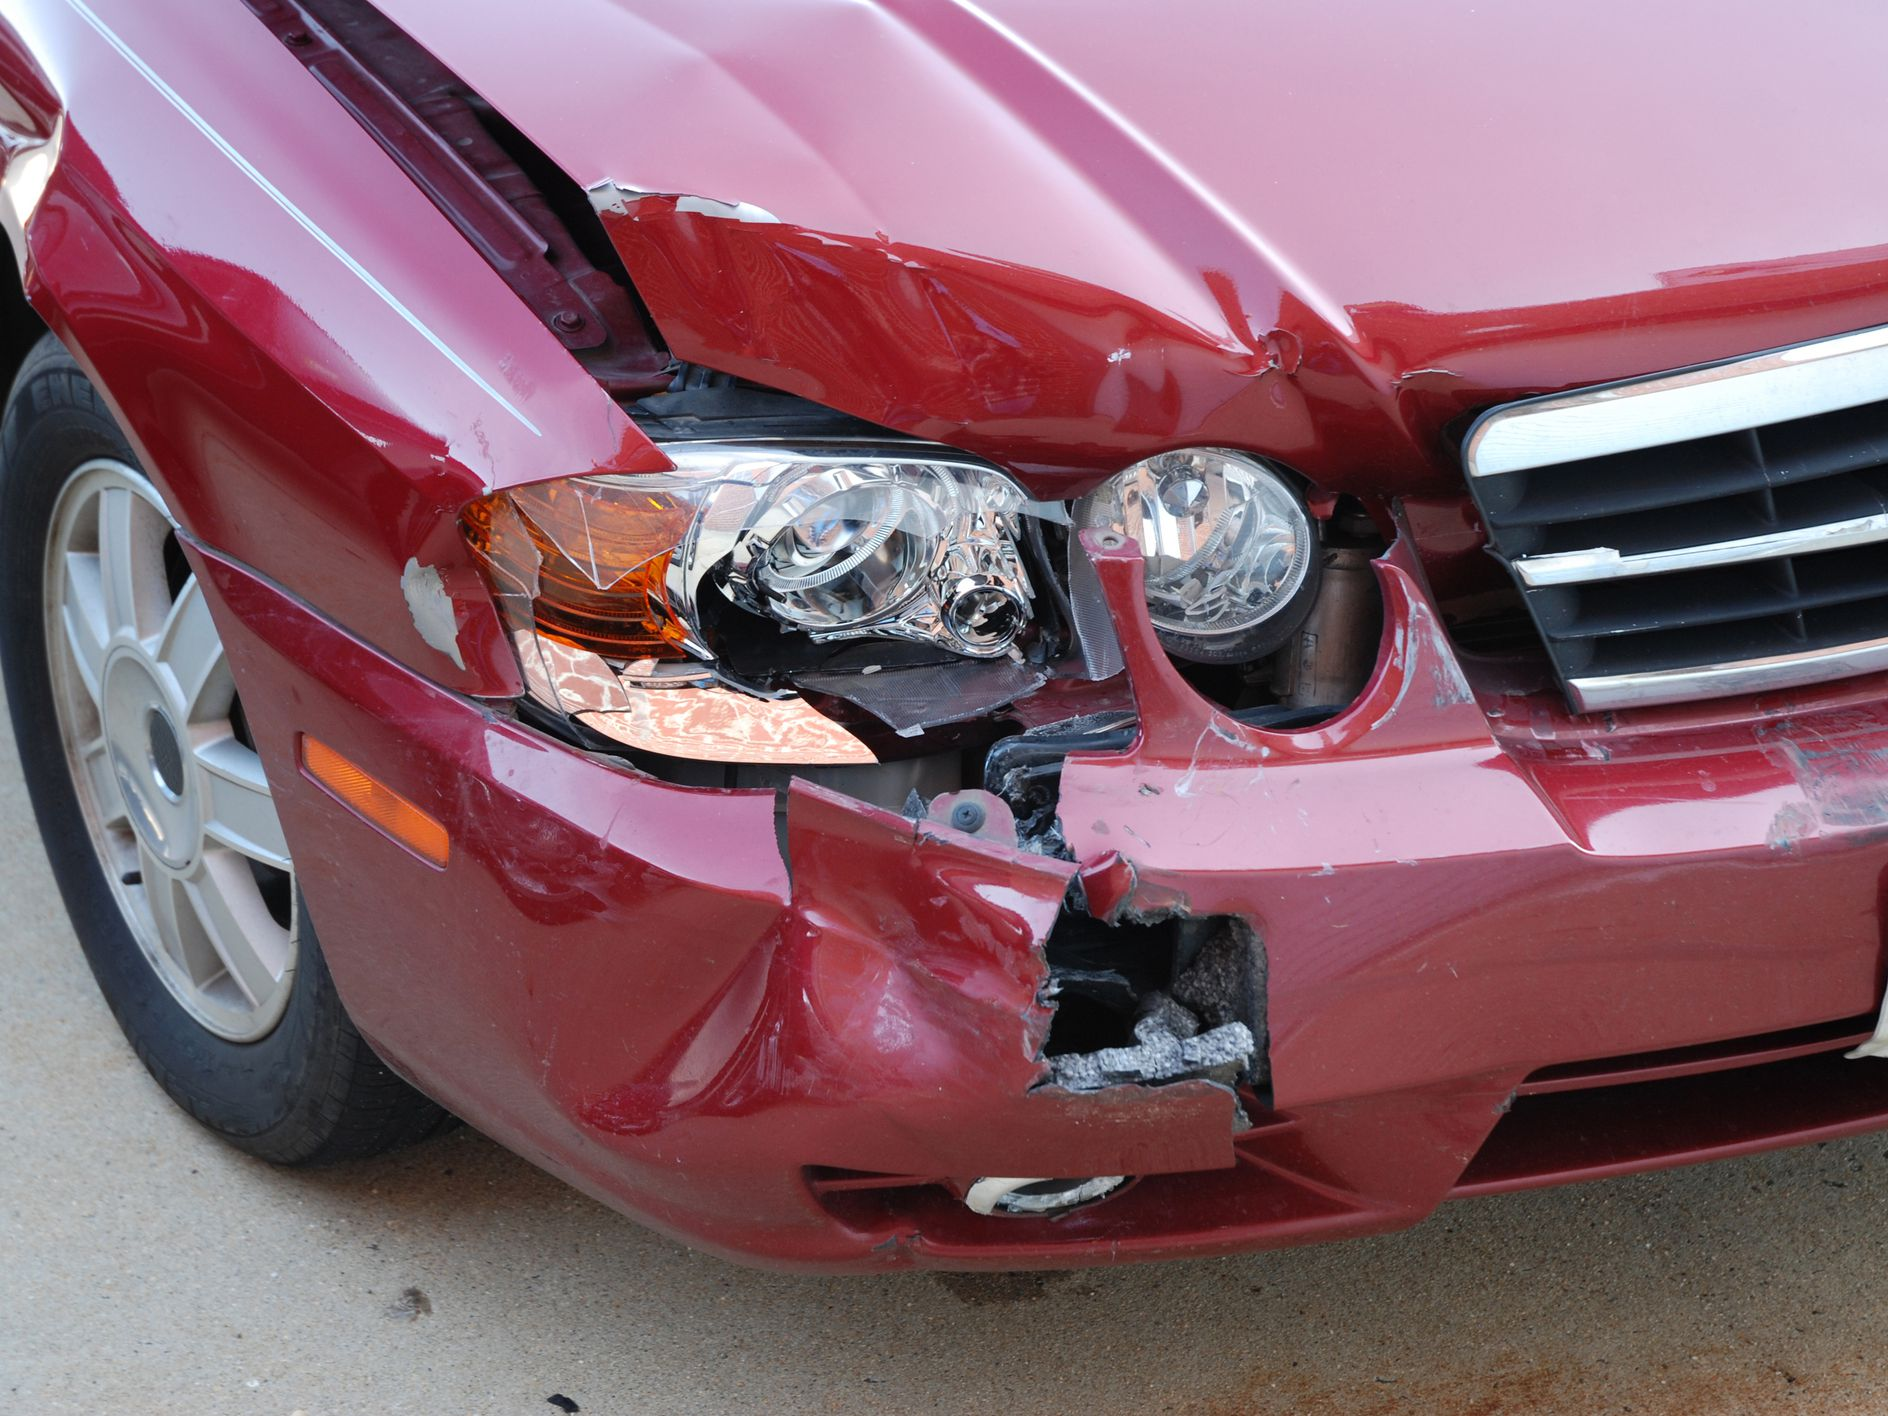 When is Your Vehicle a Total Loss?